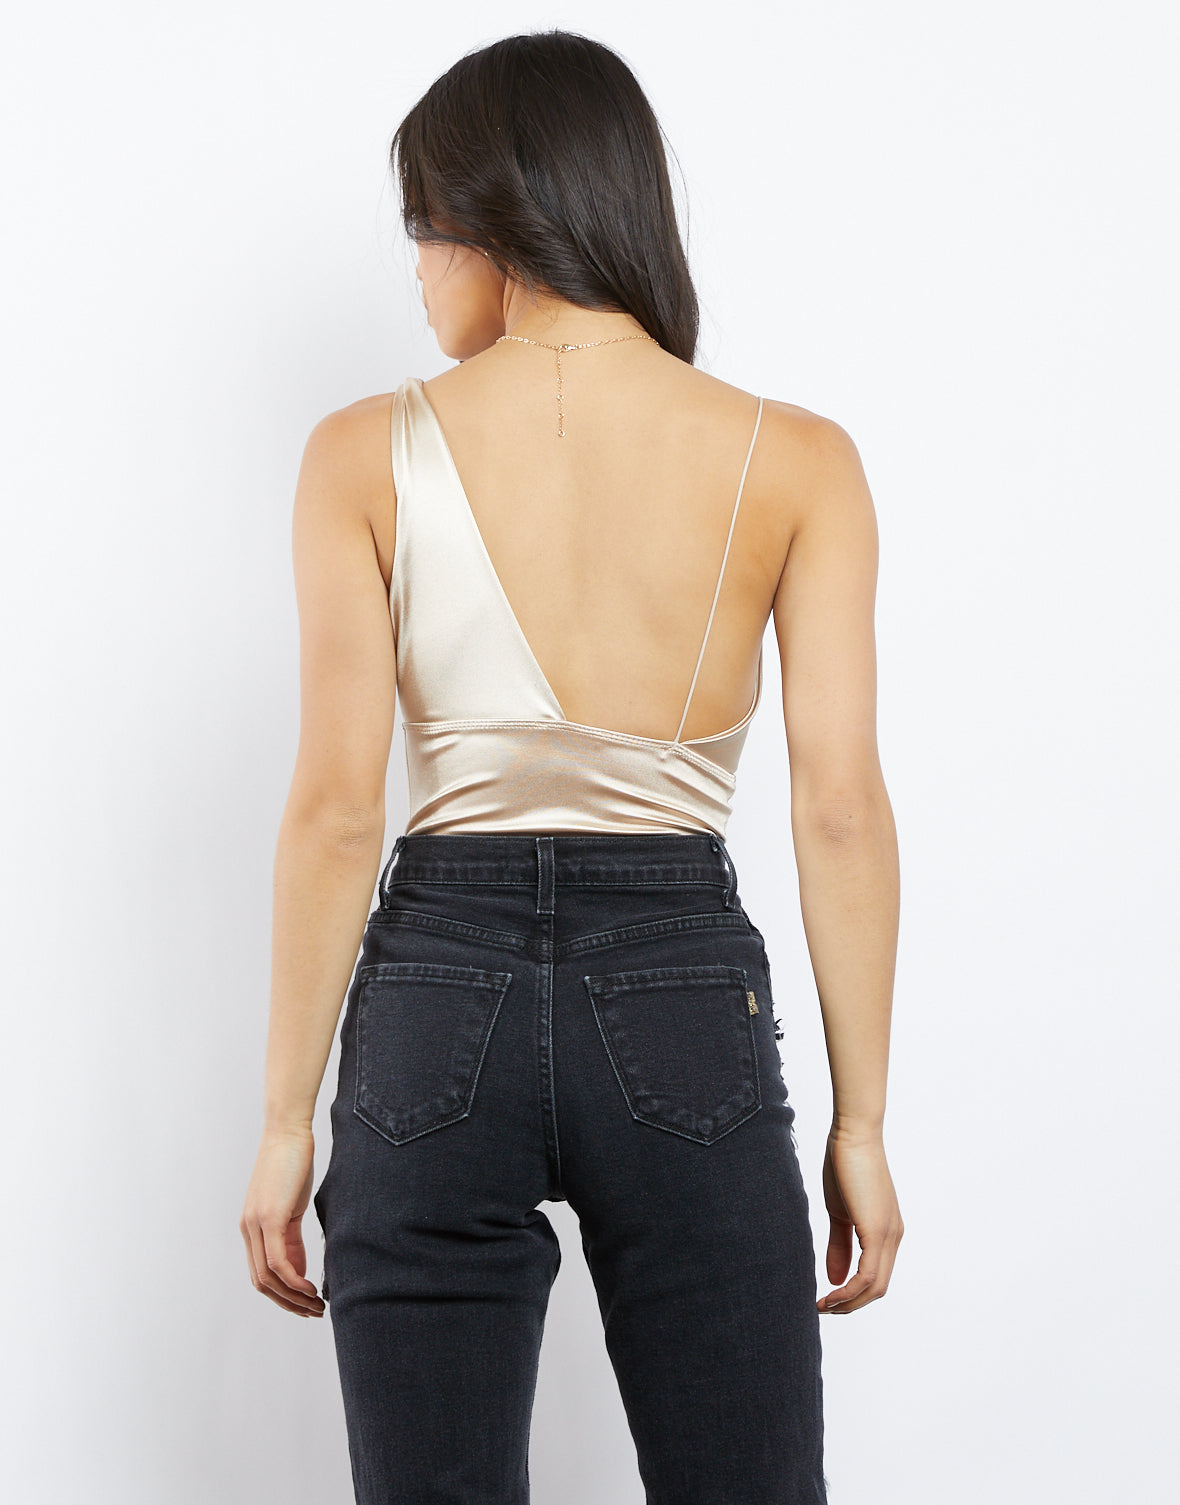 Kai Shiny Bodysuit